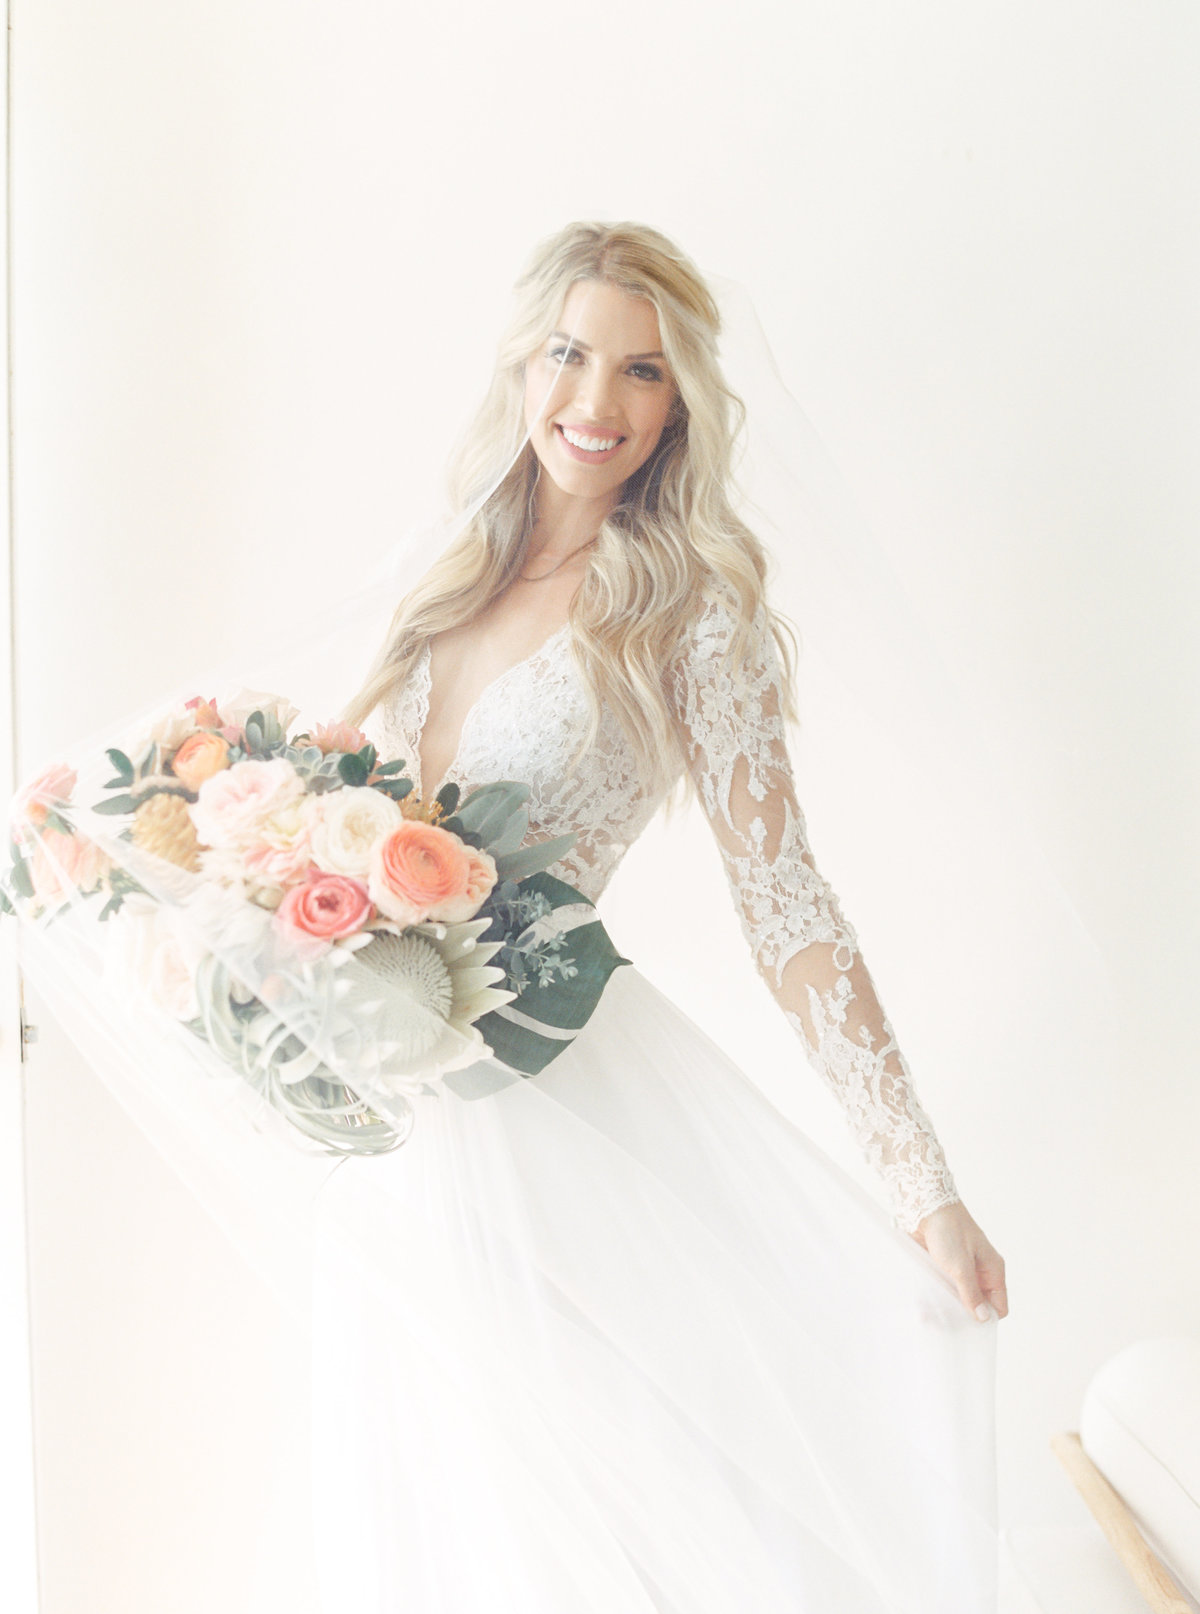 BarbaraRoryWedding_LFP0225